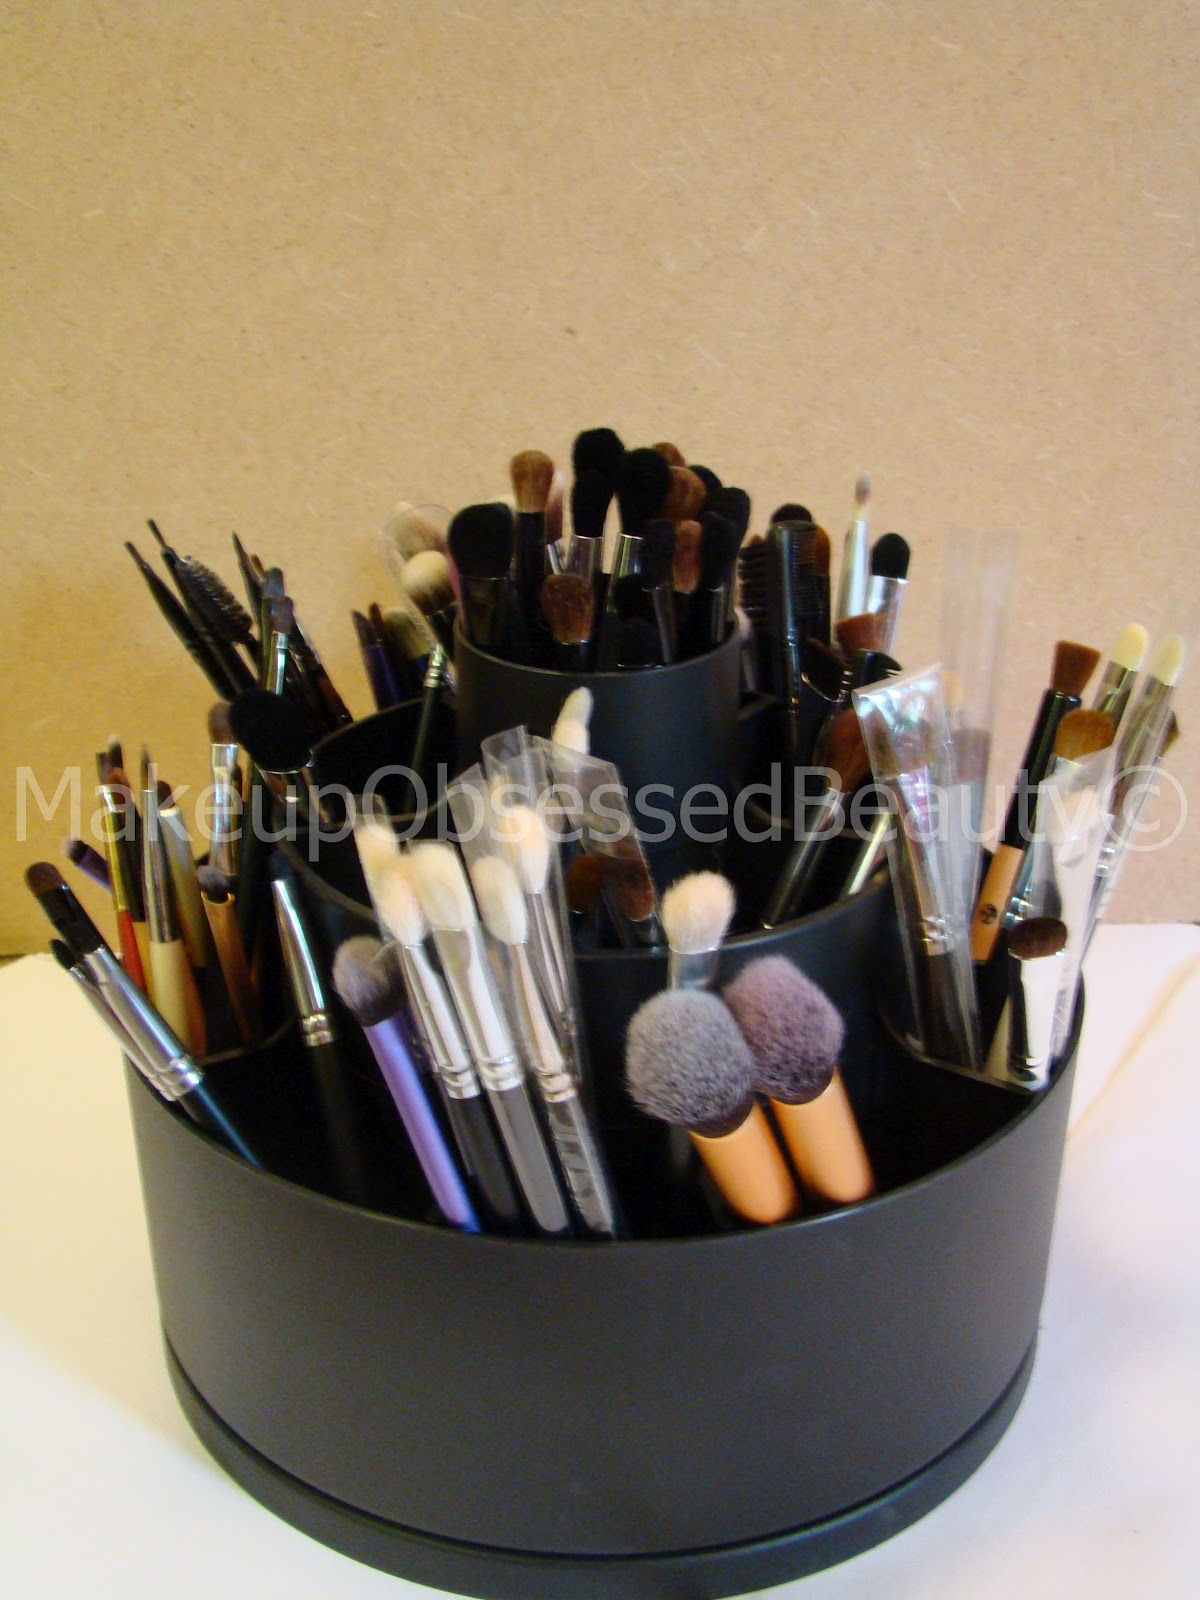 How I Store My Makeup Brushes. Revolving Makeup Brush